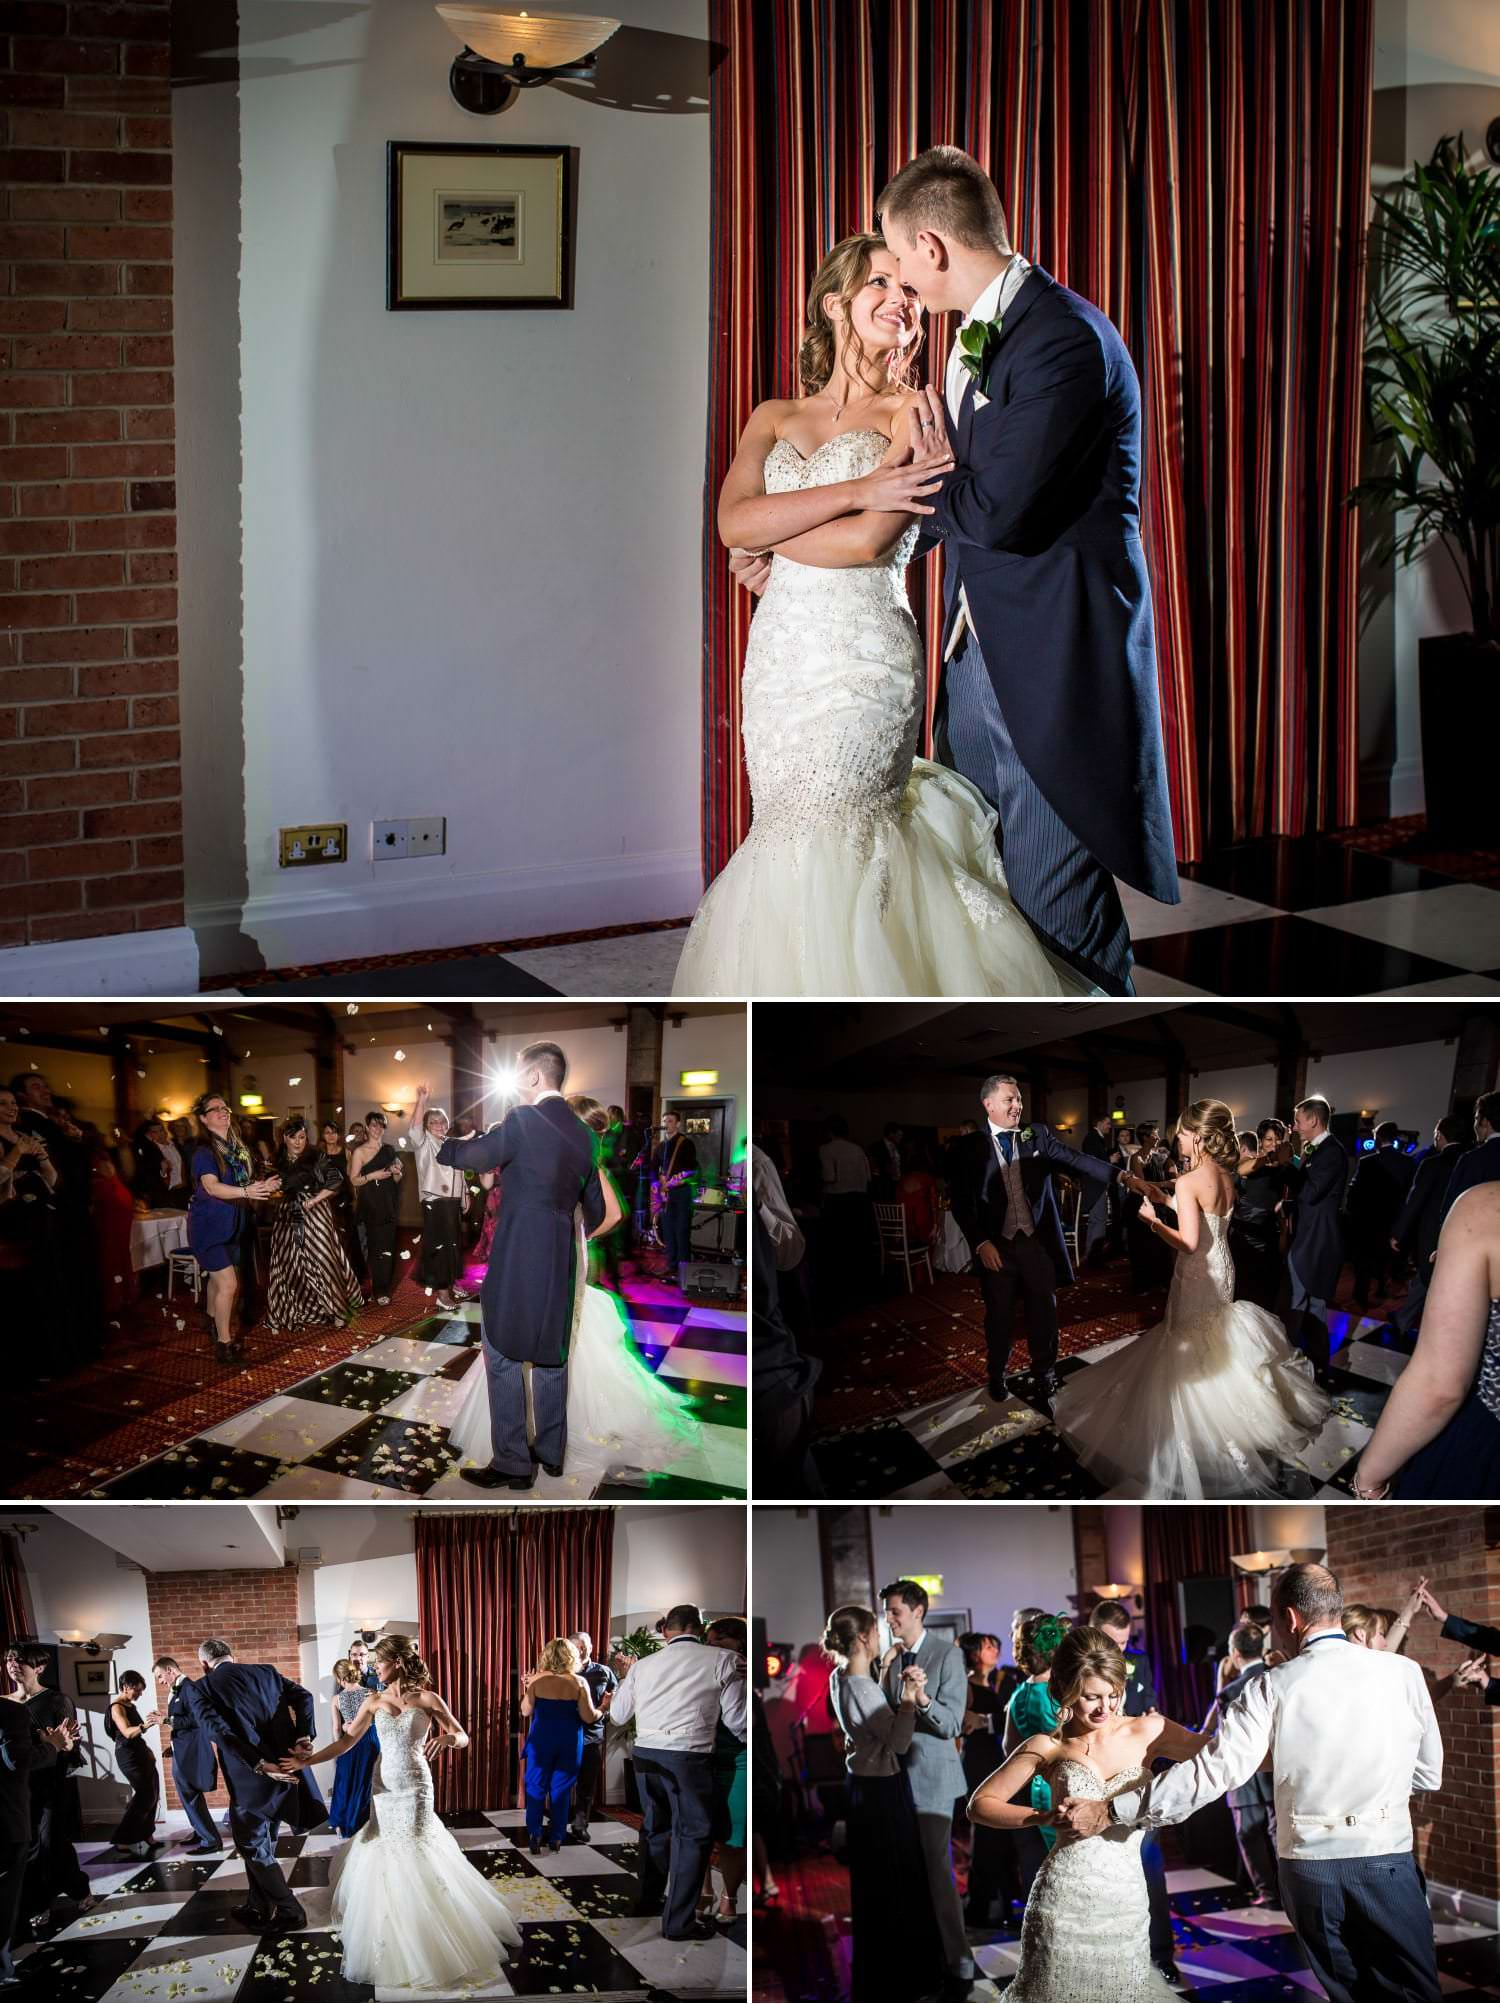 Wedding photography of the first dance at Carden Park, Chester, Cheshire